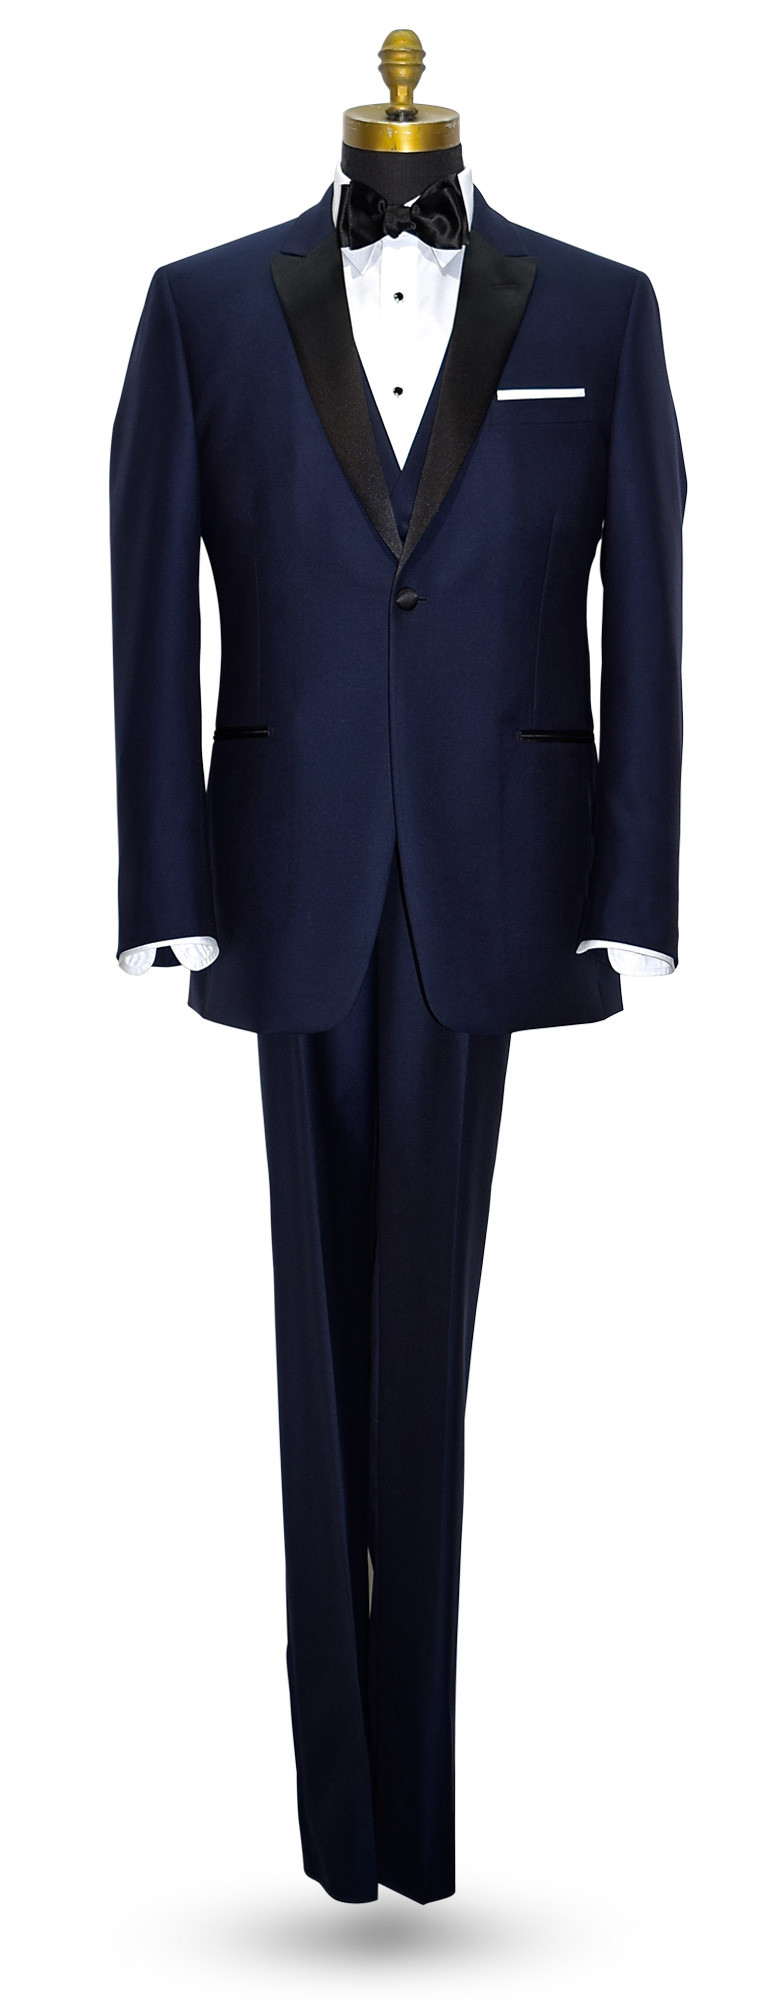 NAVY BLUE TUXEDO WITH BLACK PEAK LAPEL - COAT AND PANTS SET